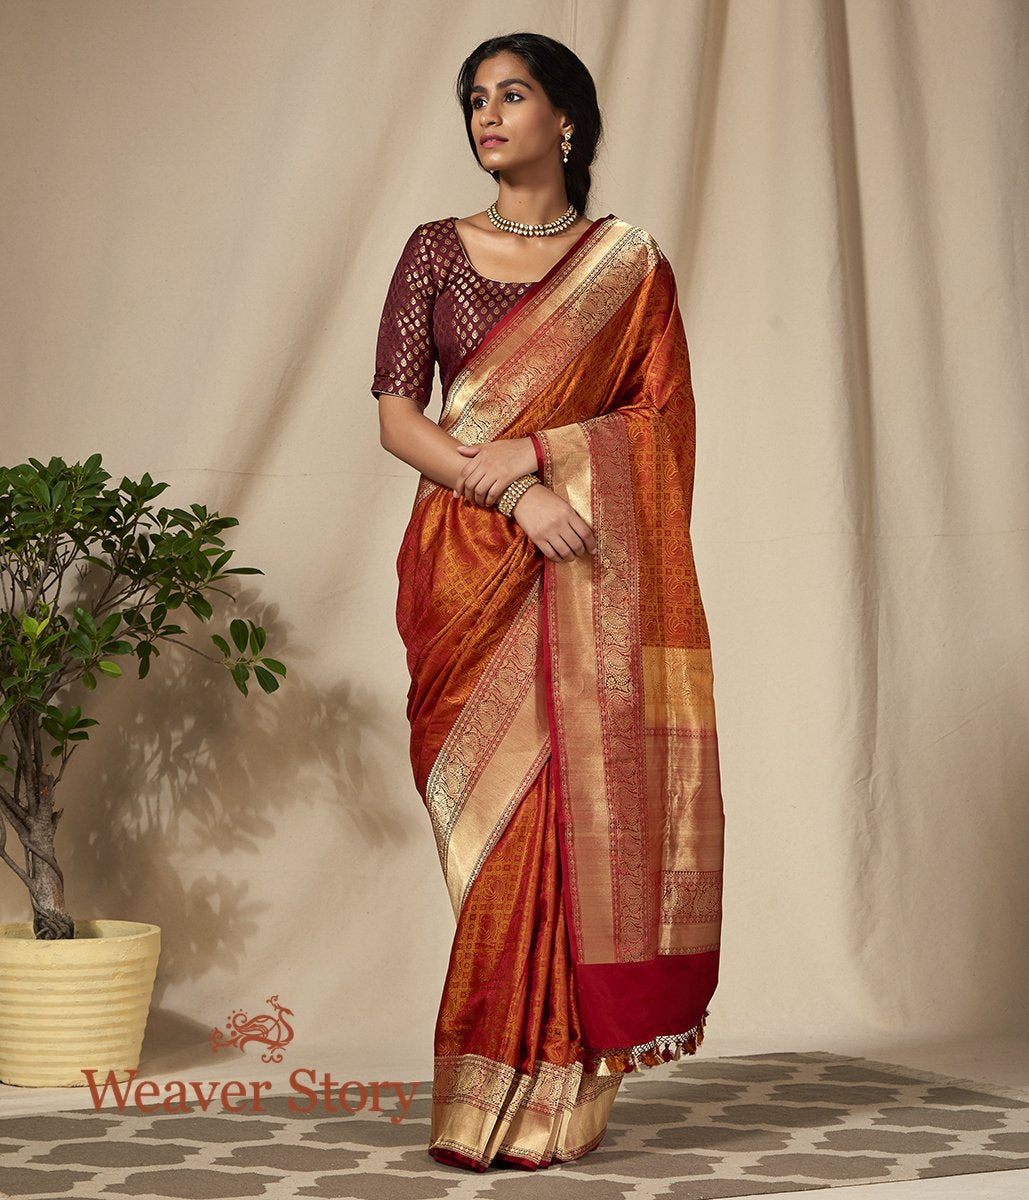 Handwoven Mustard and Red Jamawar Saree with Woven Bird Motifs